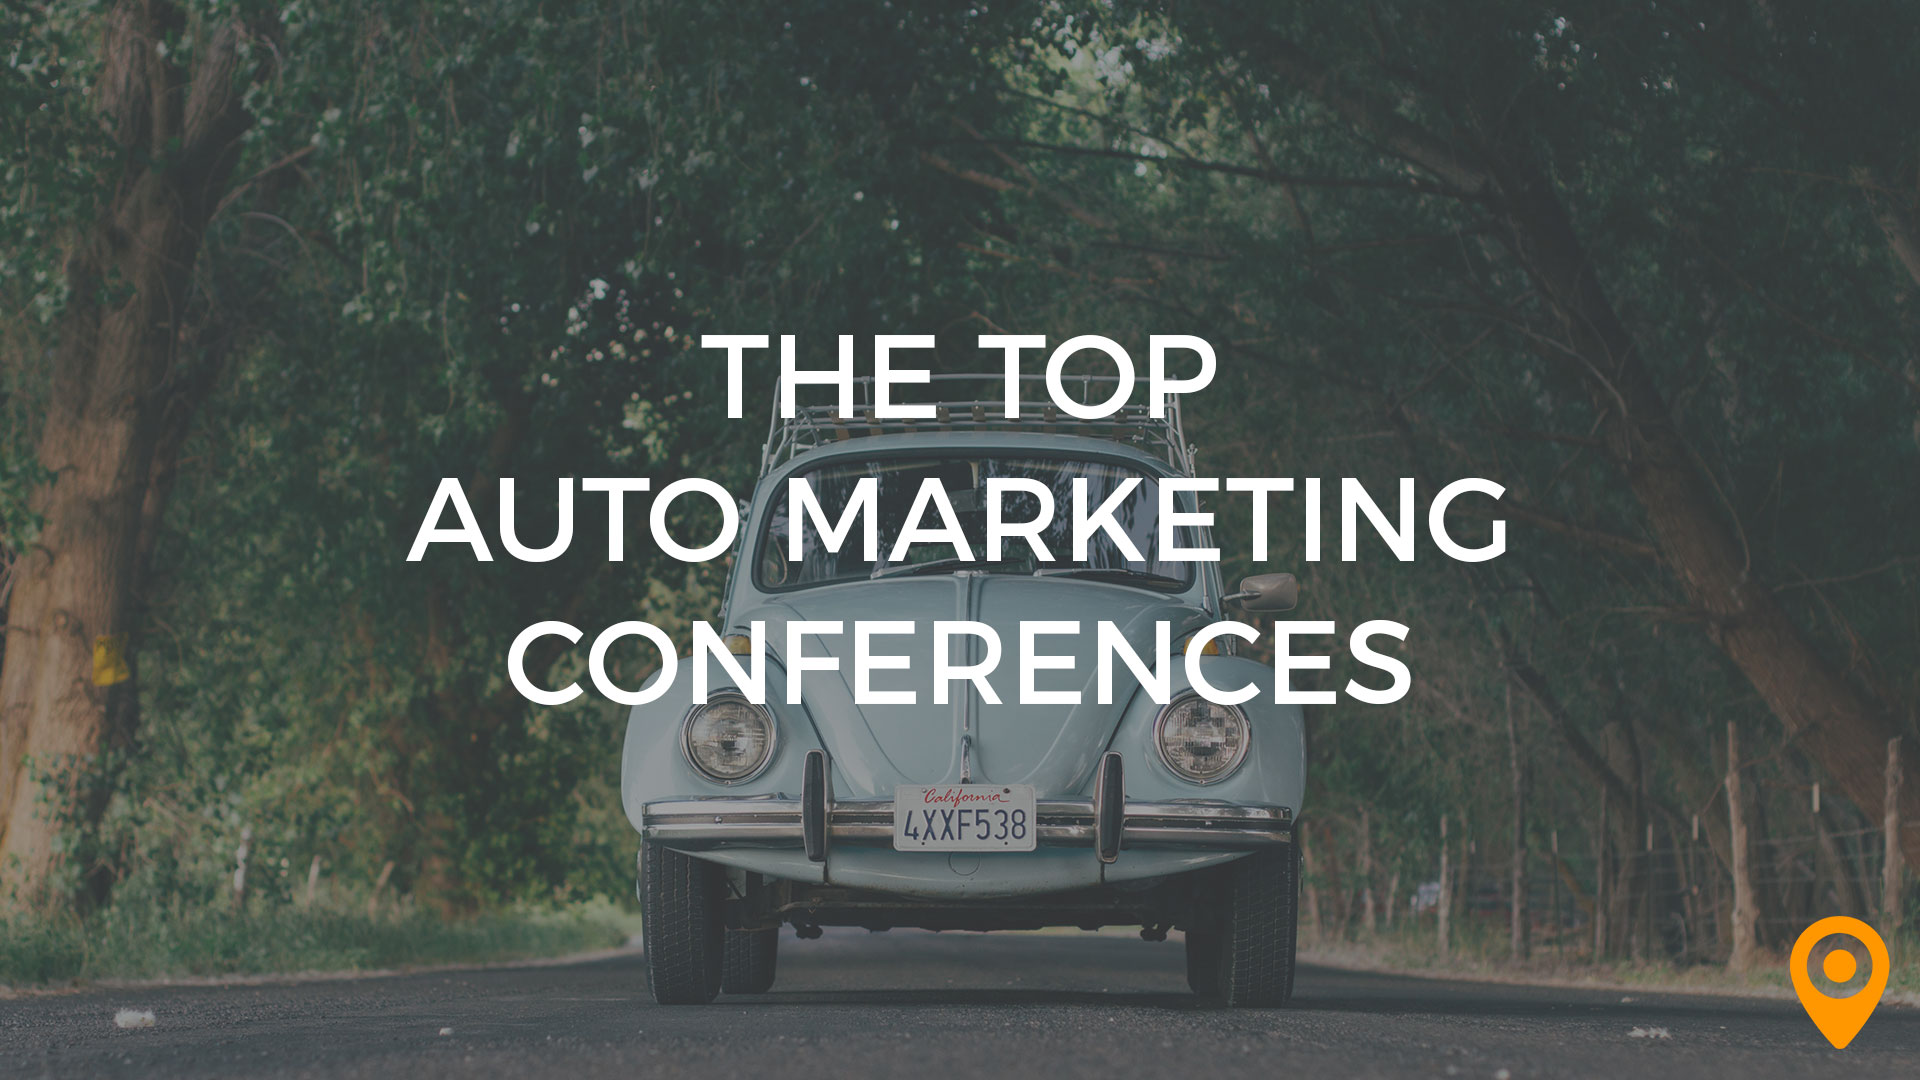 The Top Automotive Marketing Conferences